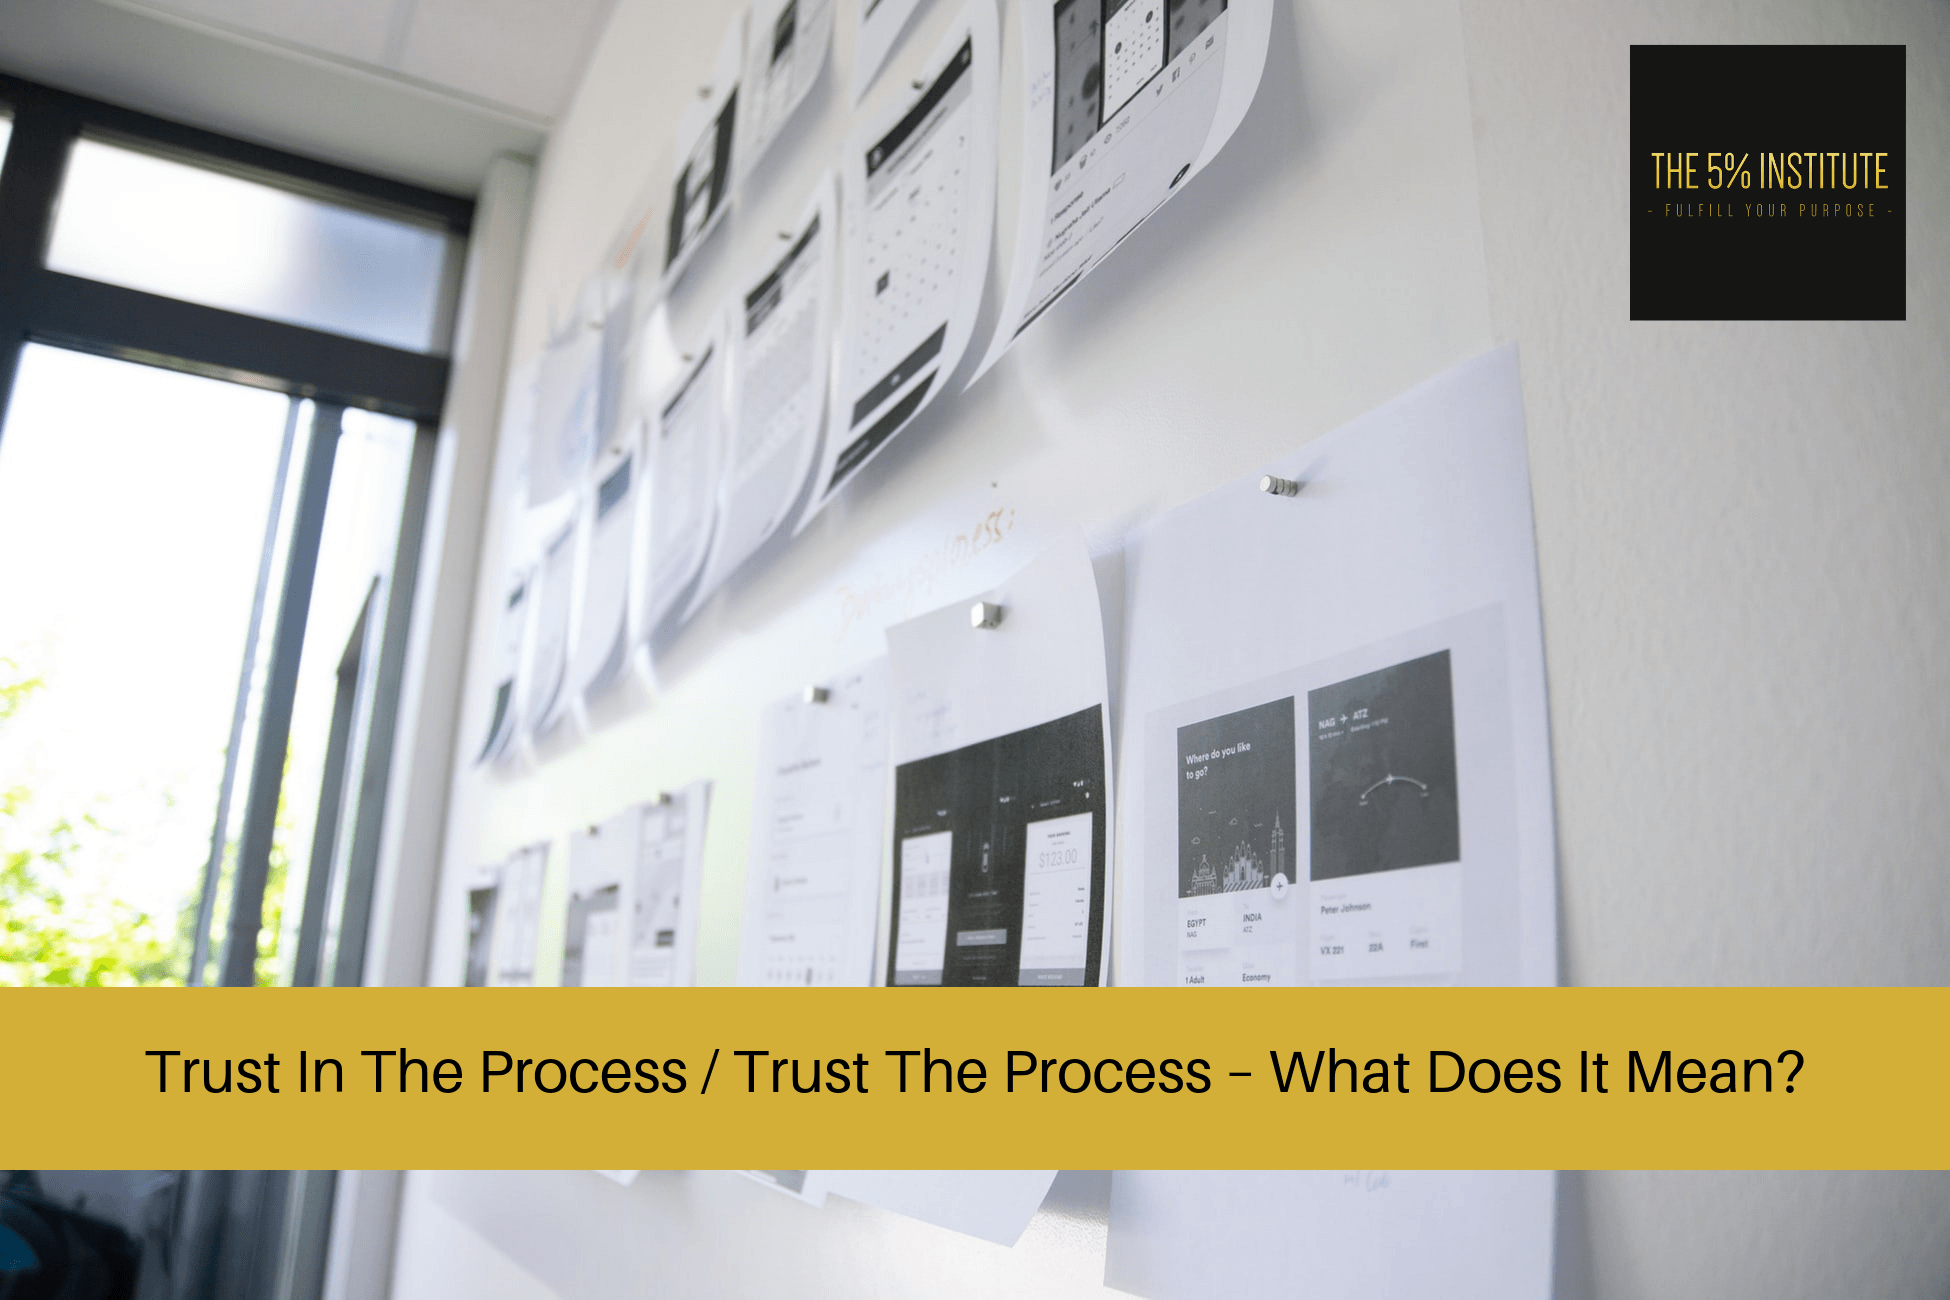 trust in the process / trust the process